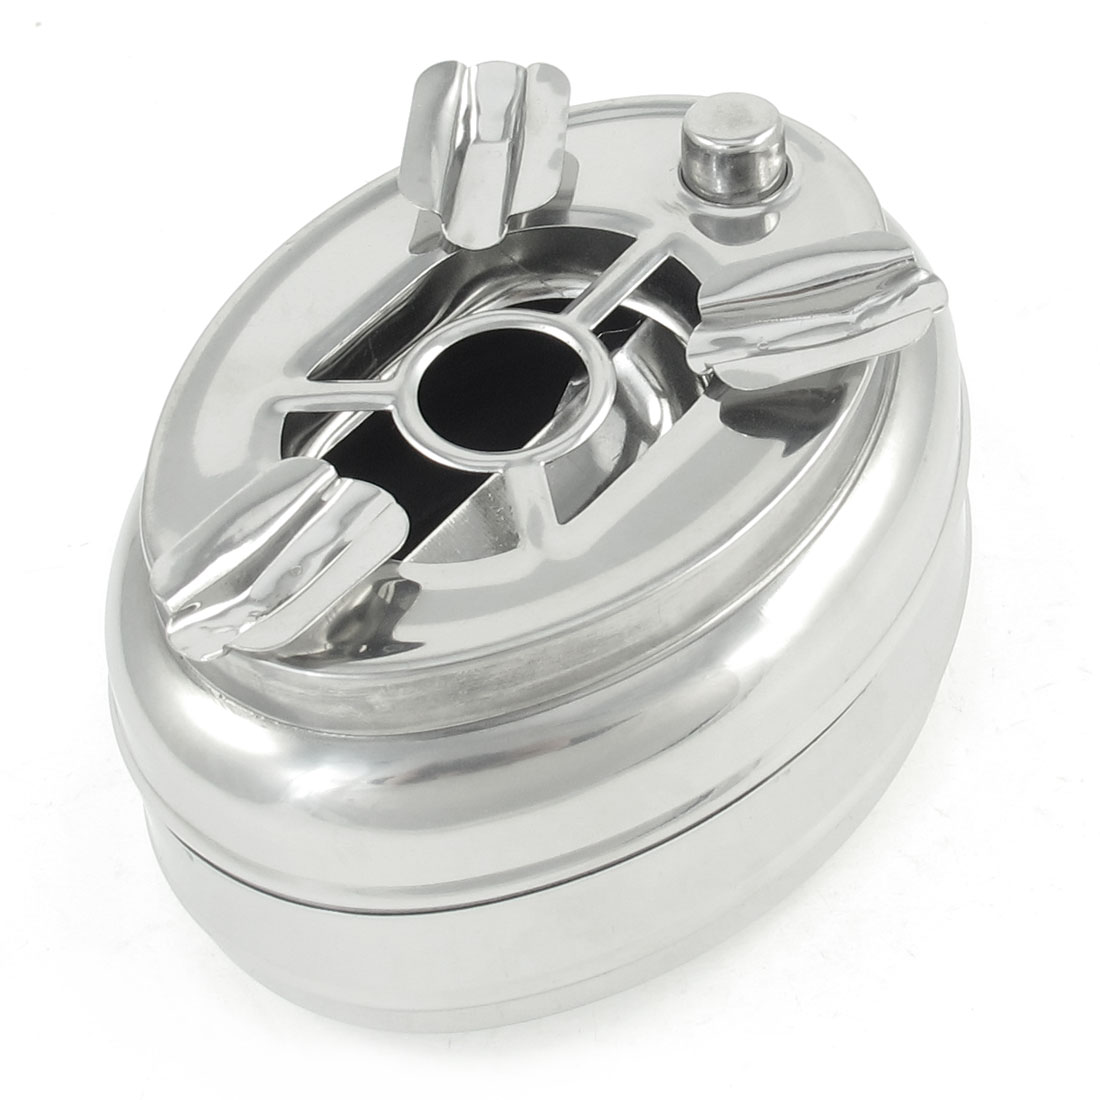 Home Cars Interior Oval Cigarette Ash Holder Ashtray Silver Tone